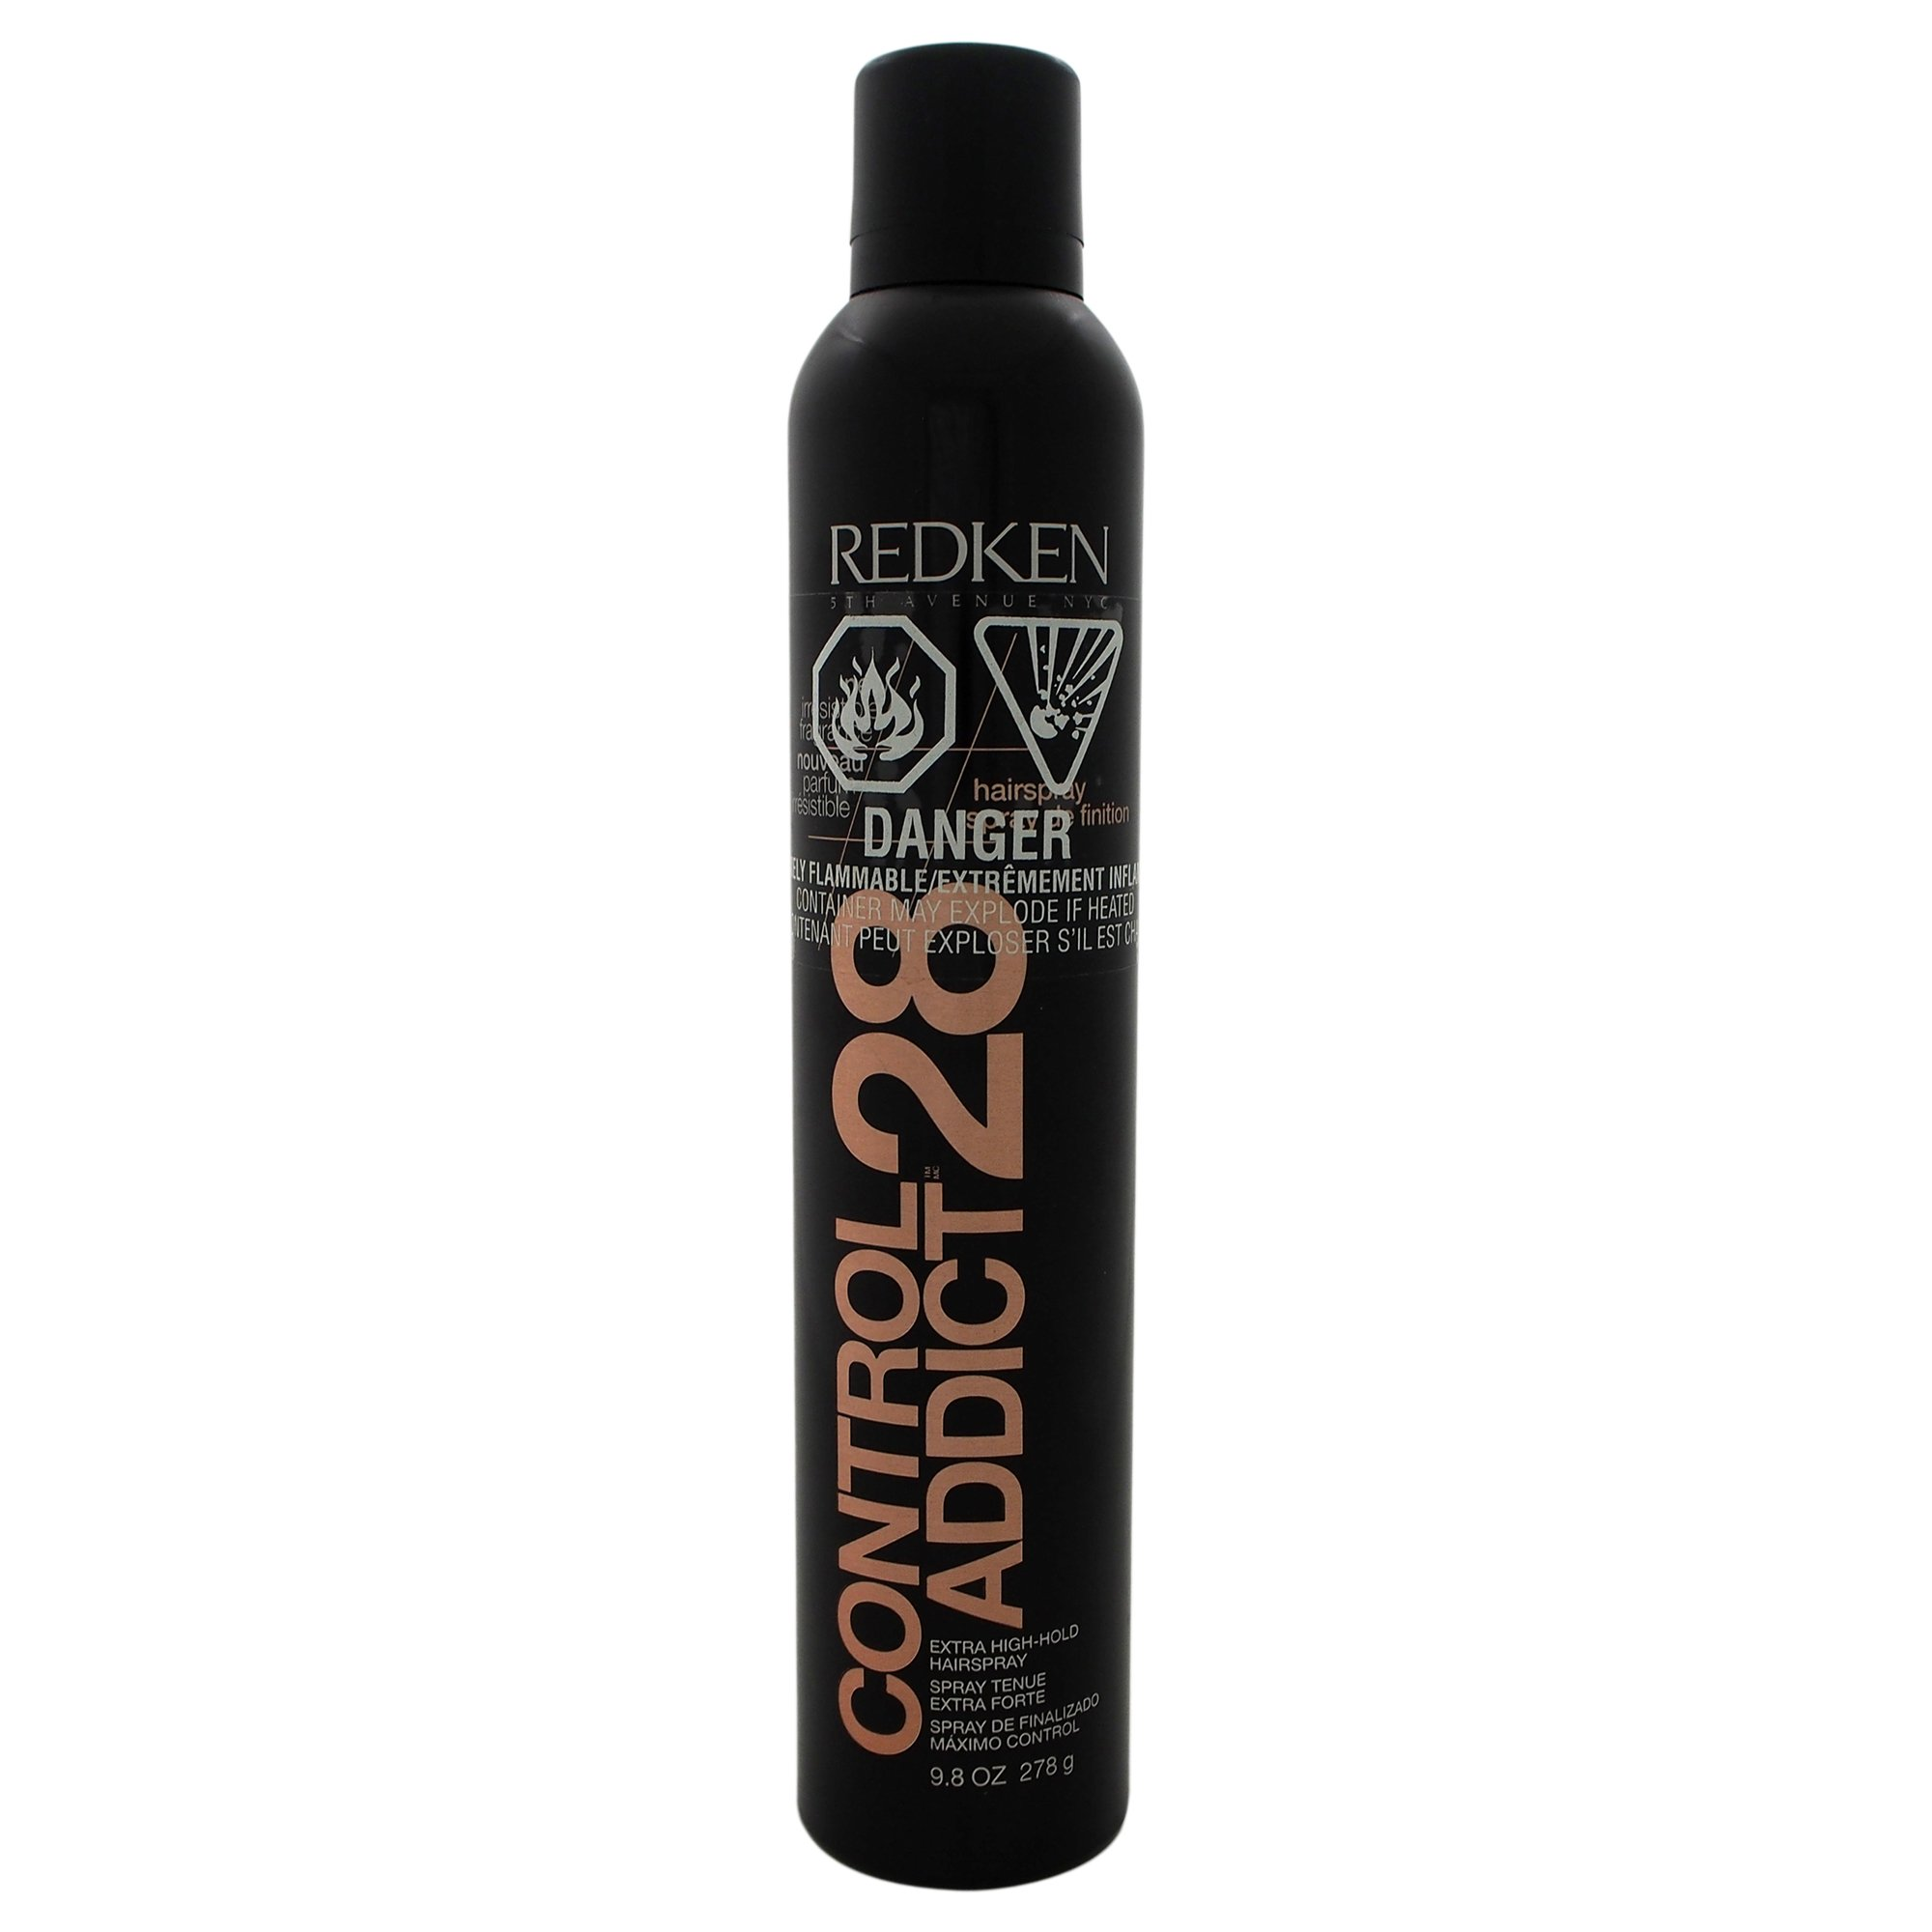 Redken Control Addict 28 Extra High-Hold Hair Spray, 9.8 Ounce by REDKEN (Image #1)